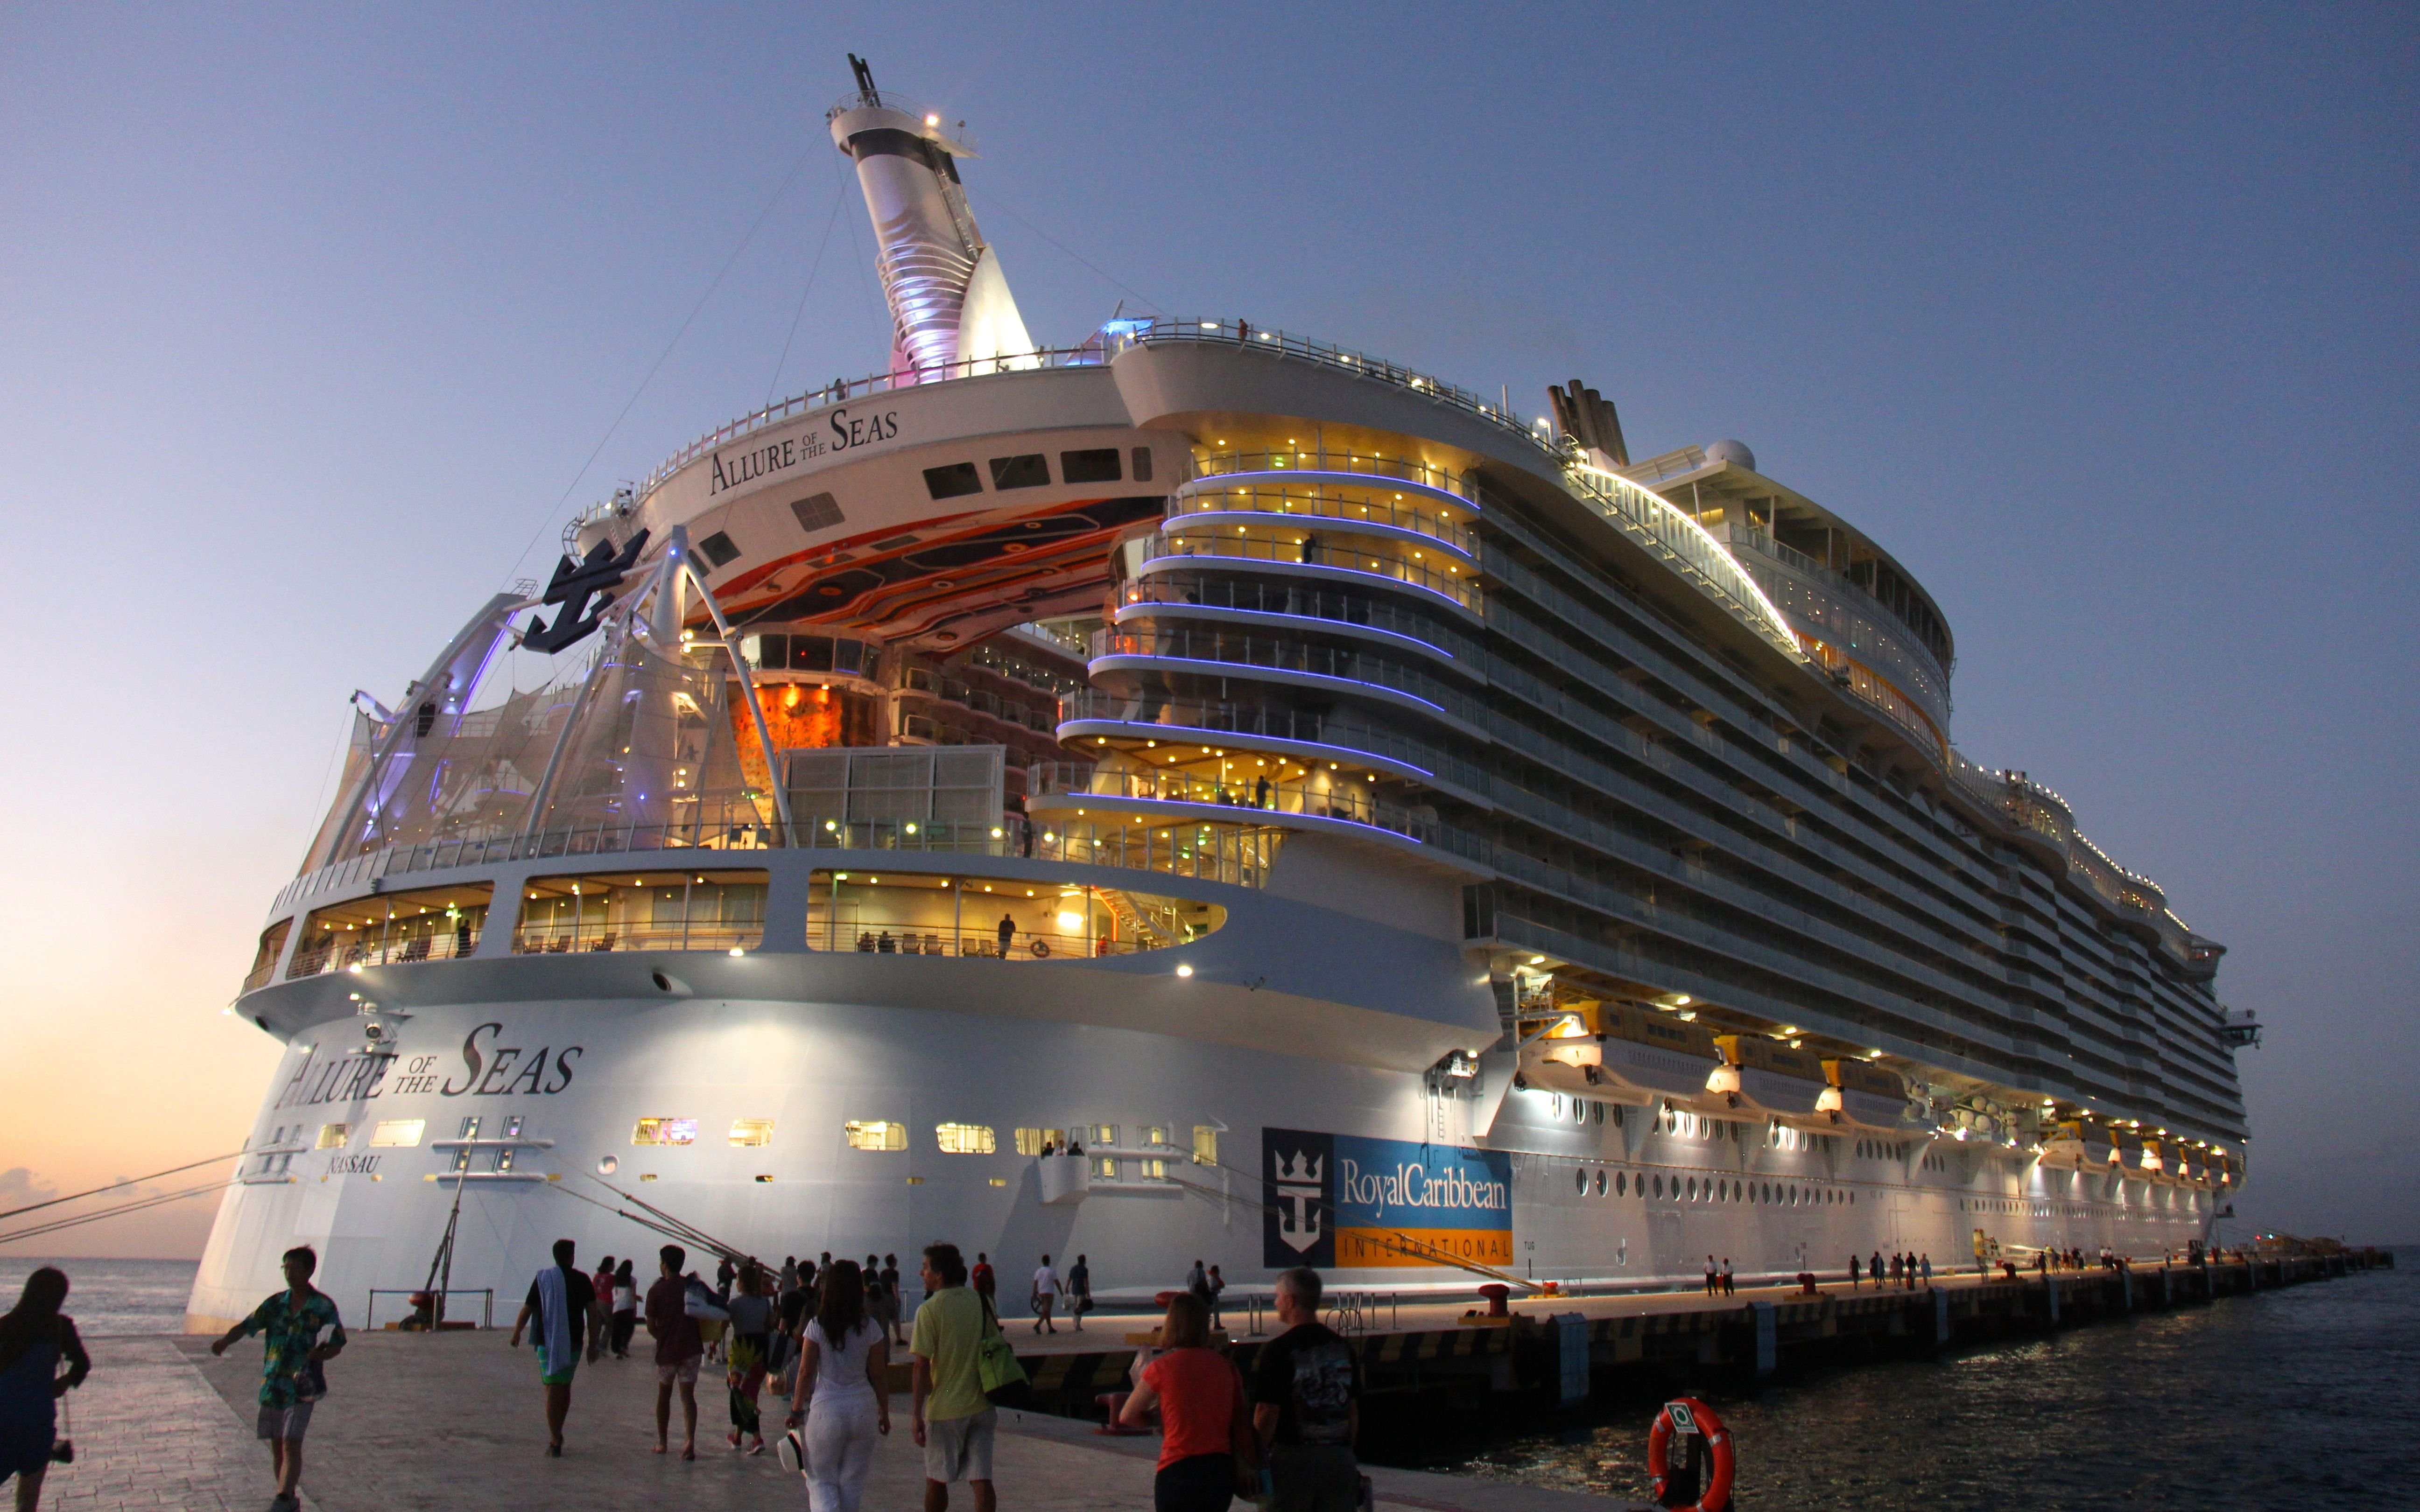 Size Isn T All That Matters Allure Of The Seas Cruise Review